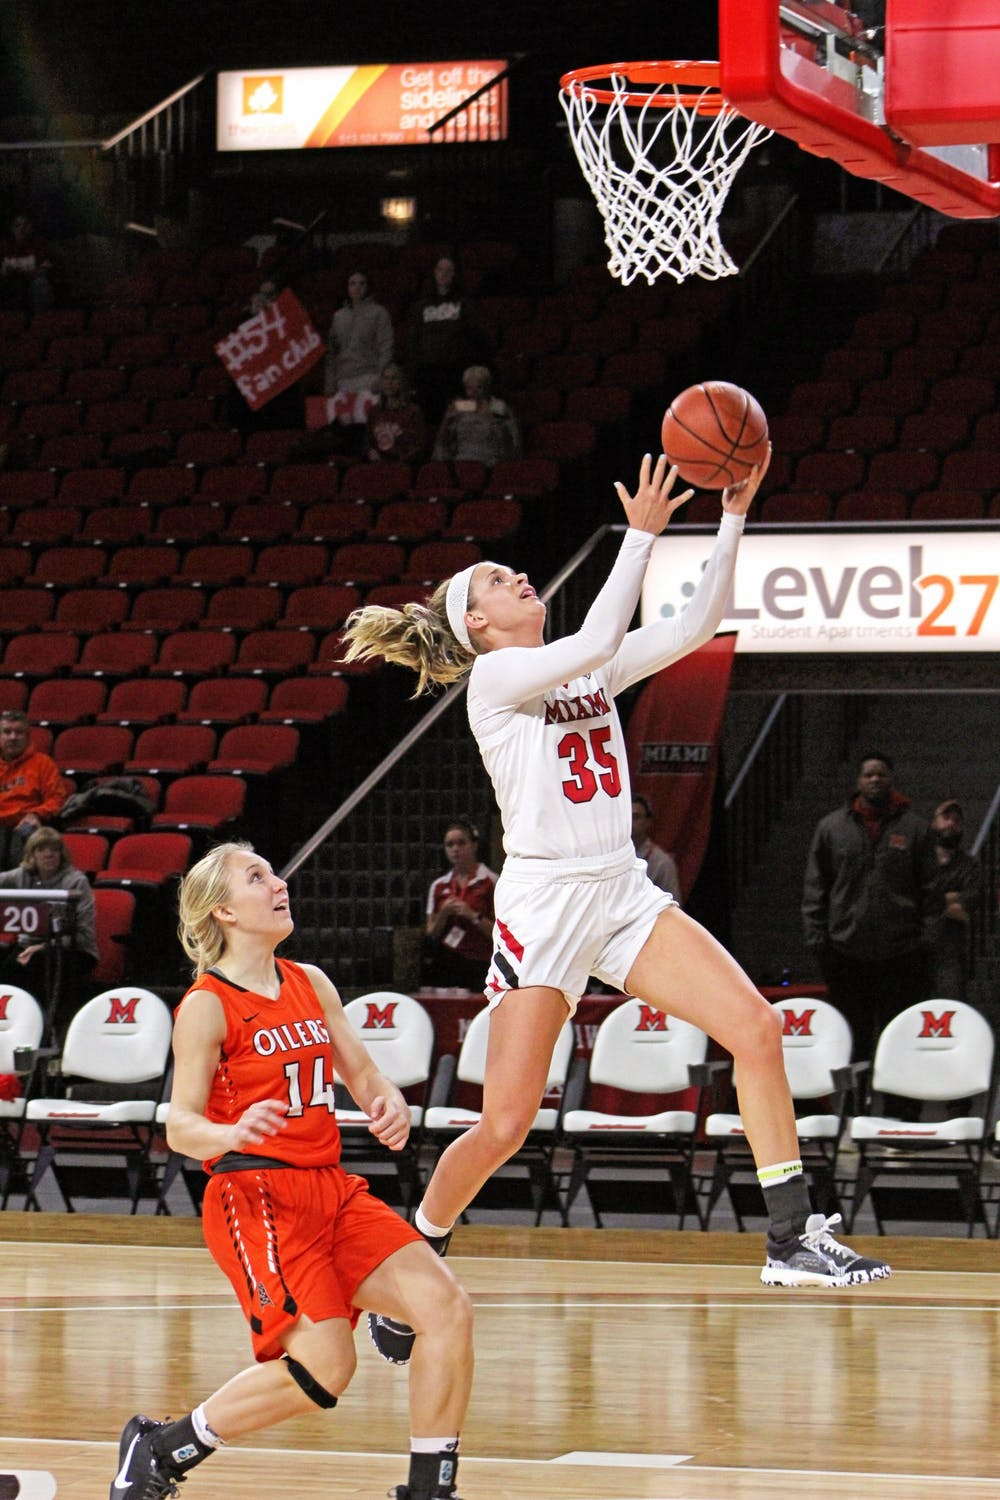 <p>Redshirt junior guard Abbey Hoff attempts a layup against Findlay in Miami&#x27;s preseason exhibition game on Oct. 31 at Millett Hall. Last season, Hoff played in 29 games, averaging 1.7 points per contest.</p>